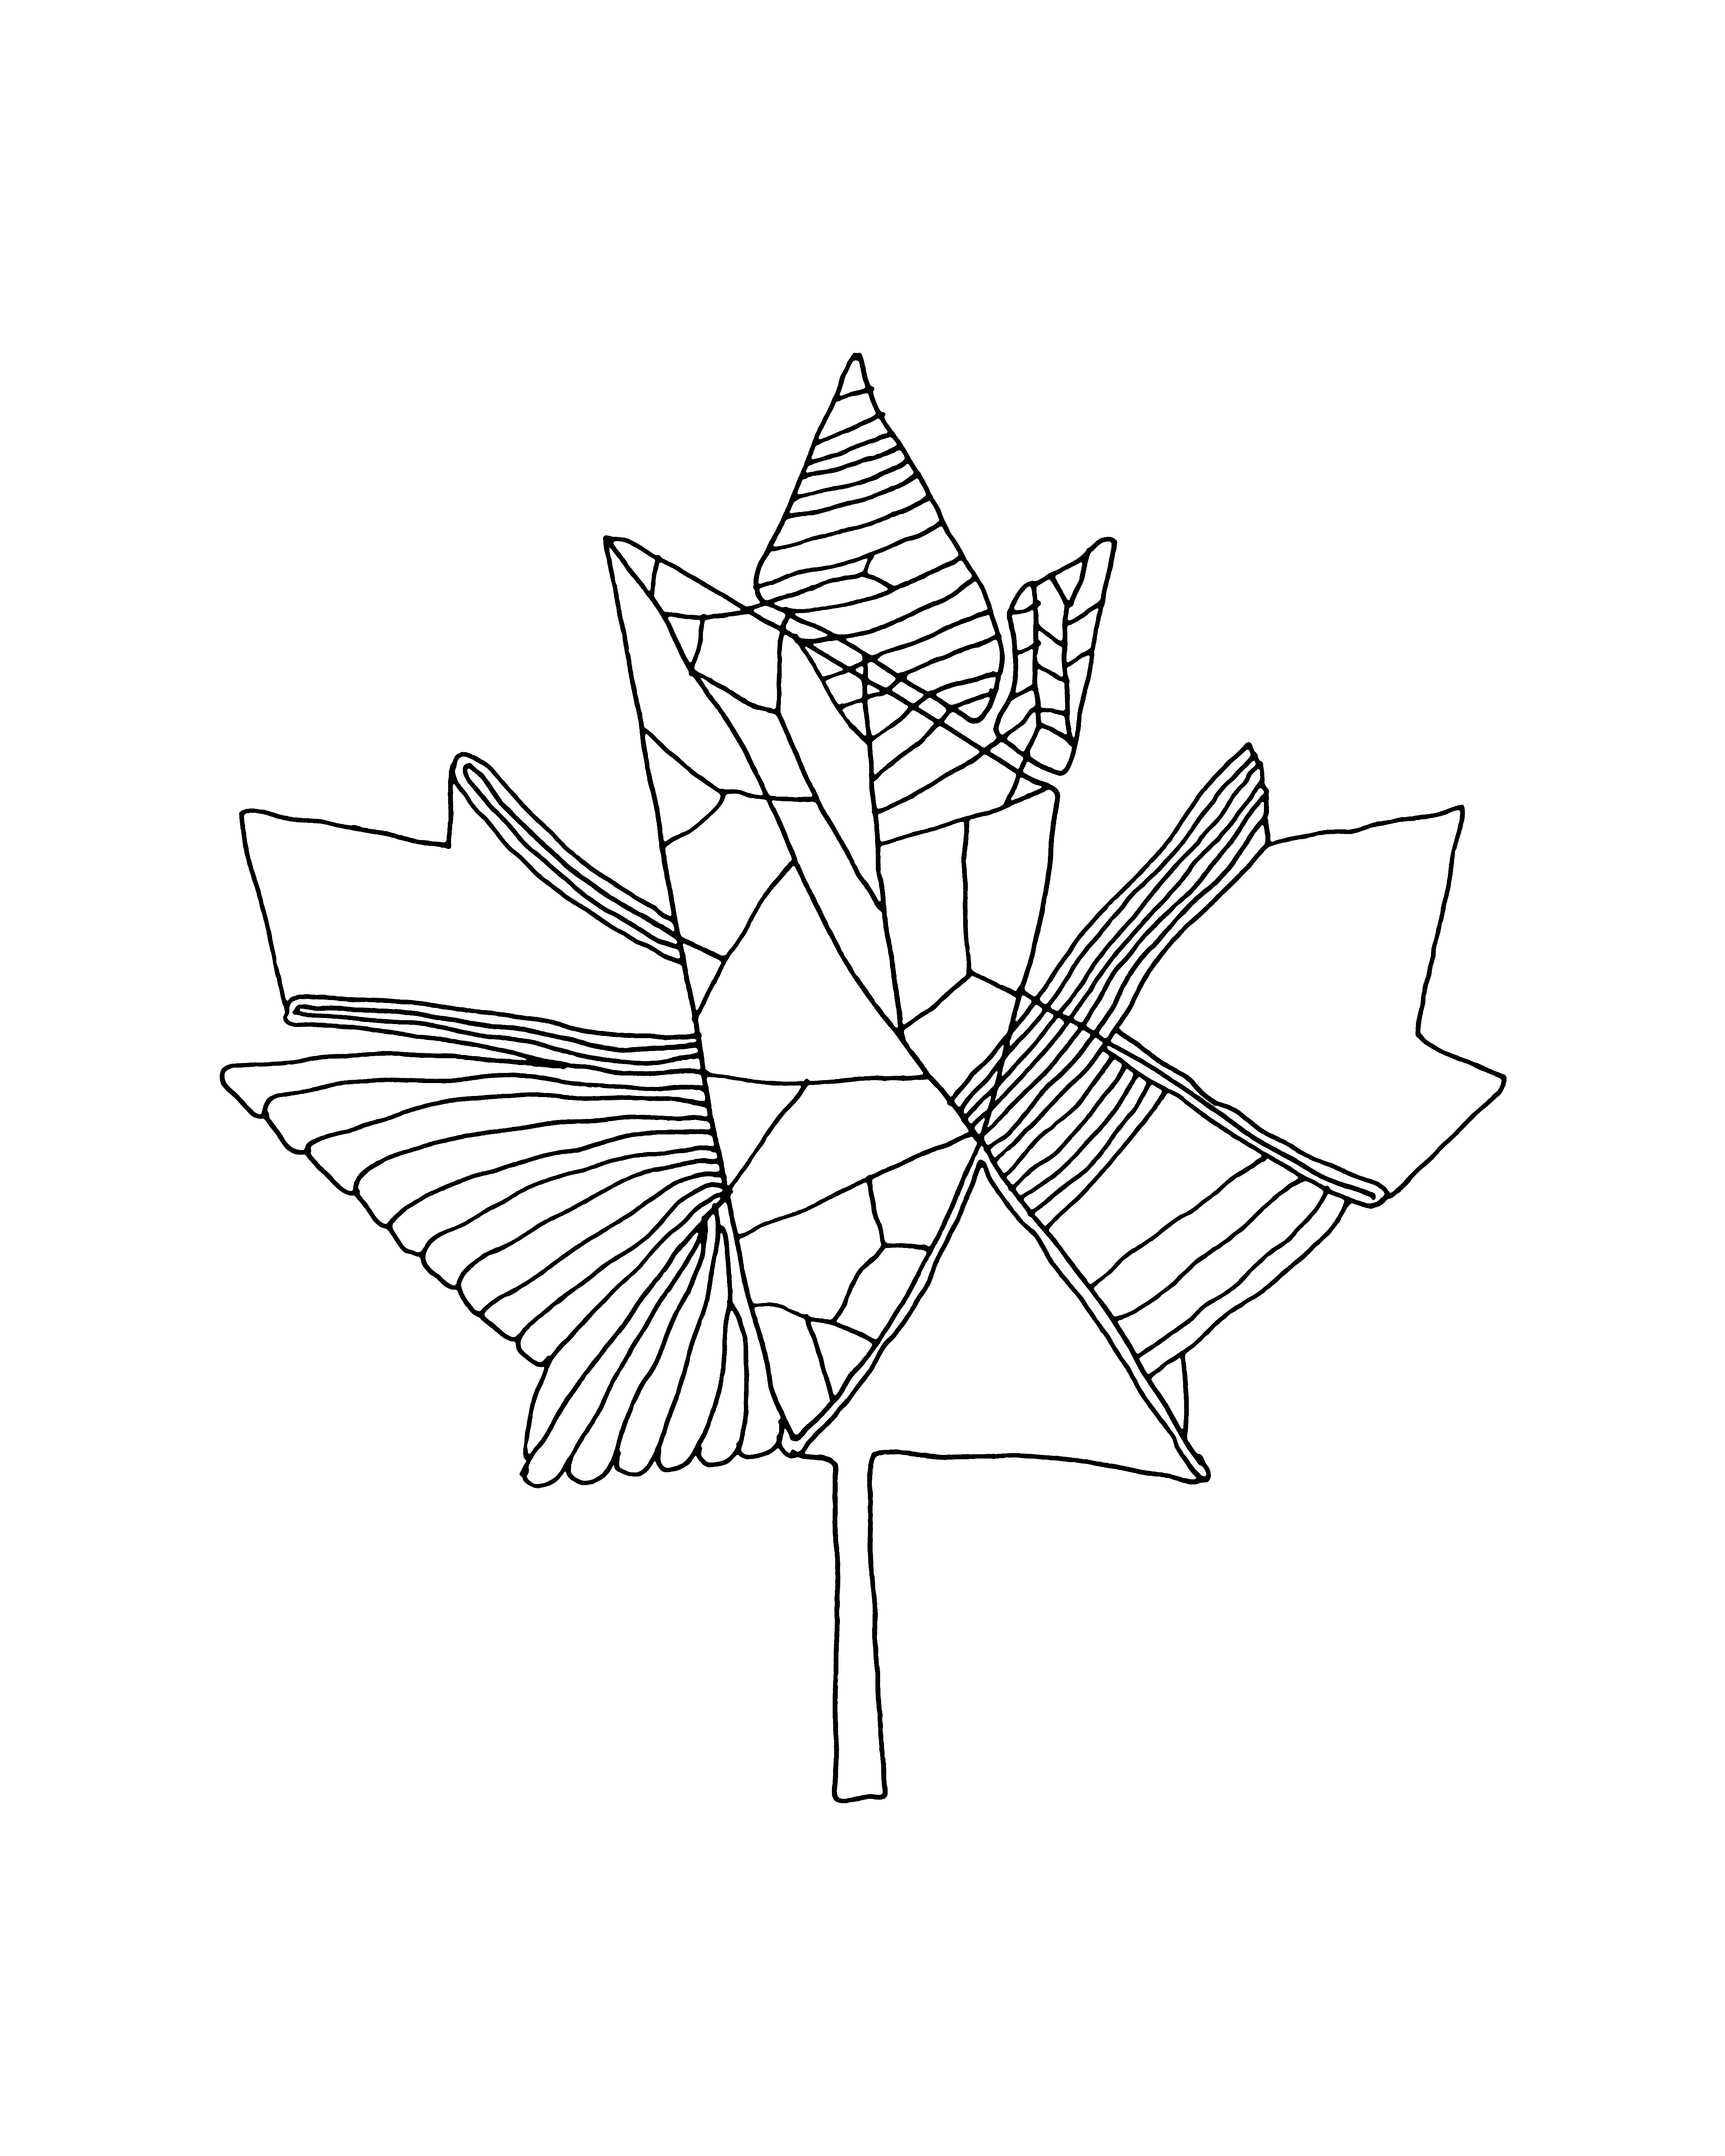 4800x6000 10,000 Pages Canadian Maple Leaf Colouring Page 5883